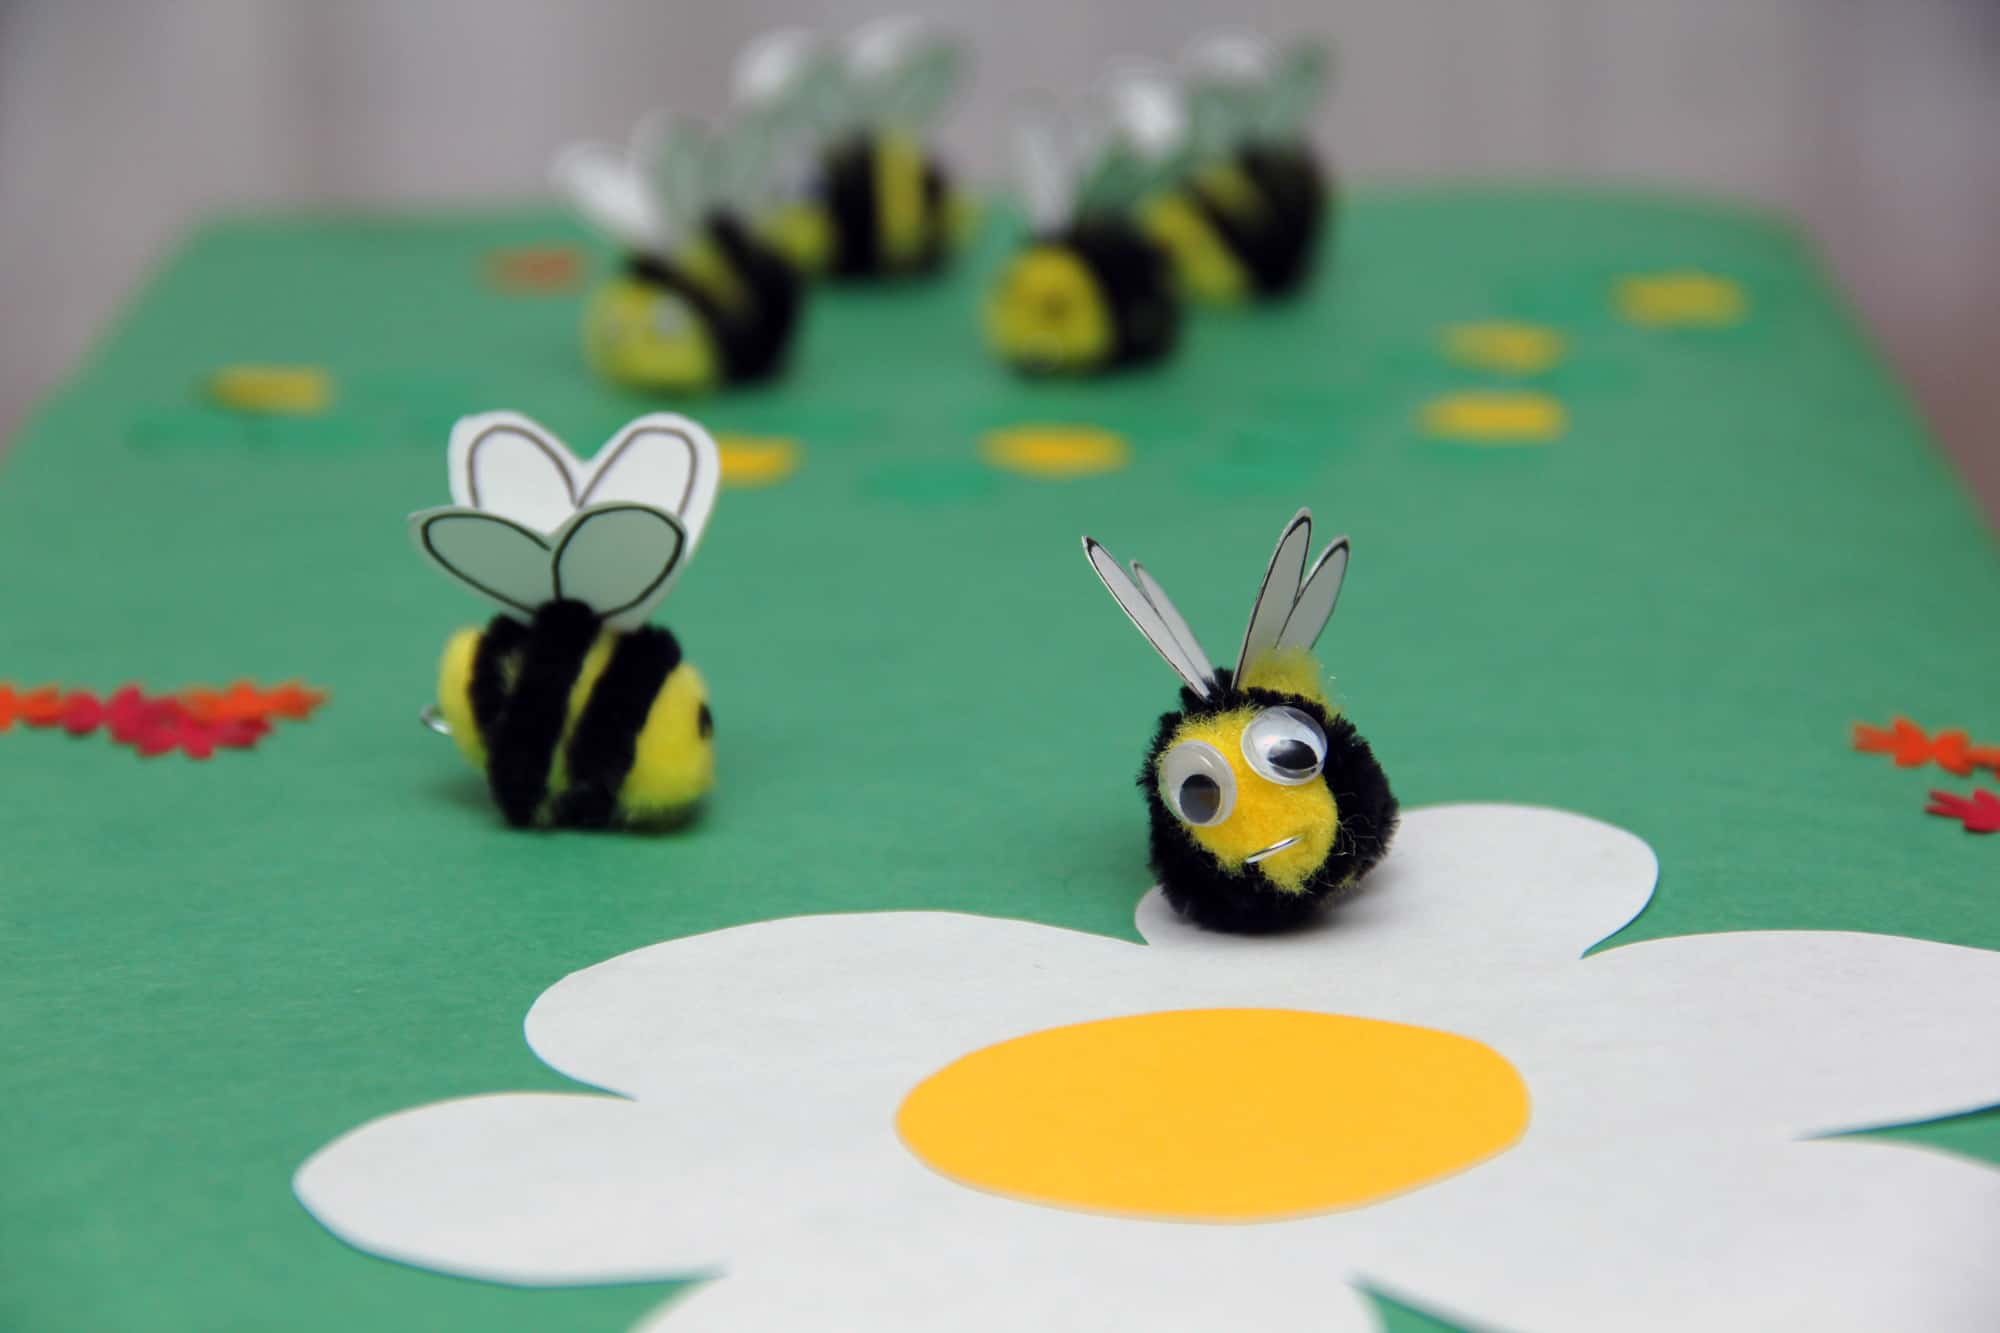 Chubby pom pom and pipecleaner bees